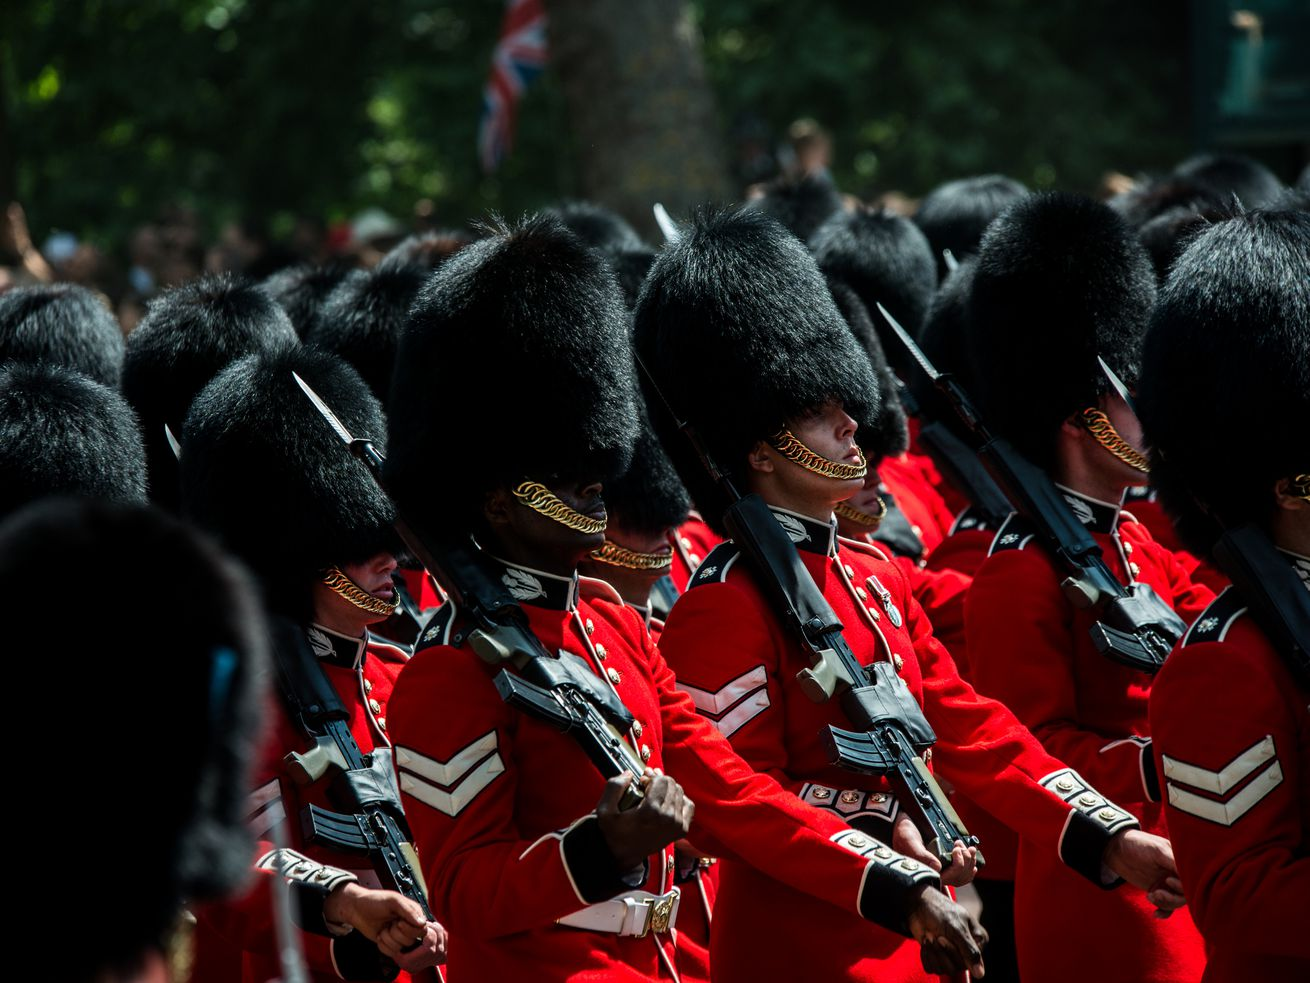 UK Royal Guards seen marching on the way to Buckingham Palace.